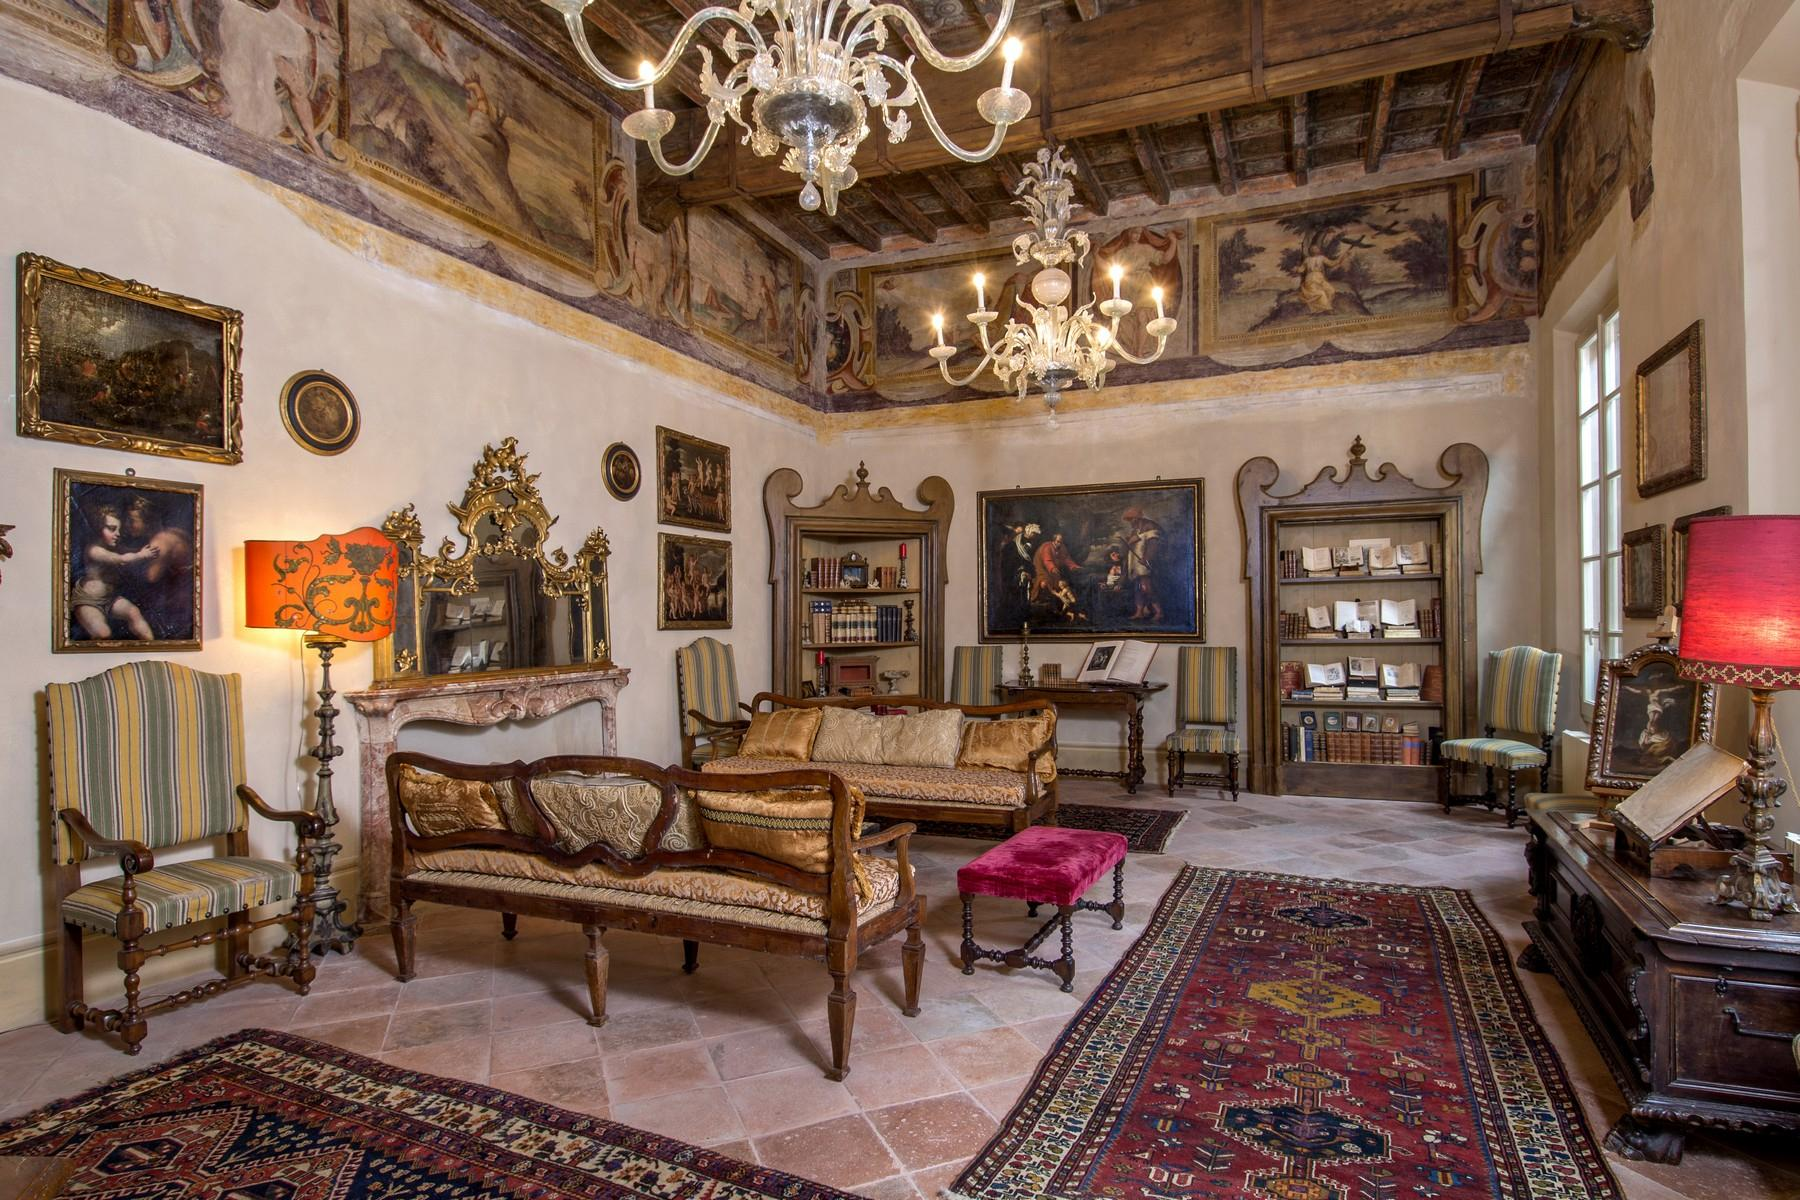 Magnificent historic palace in the heart of Reggio Emilia - 1